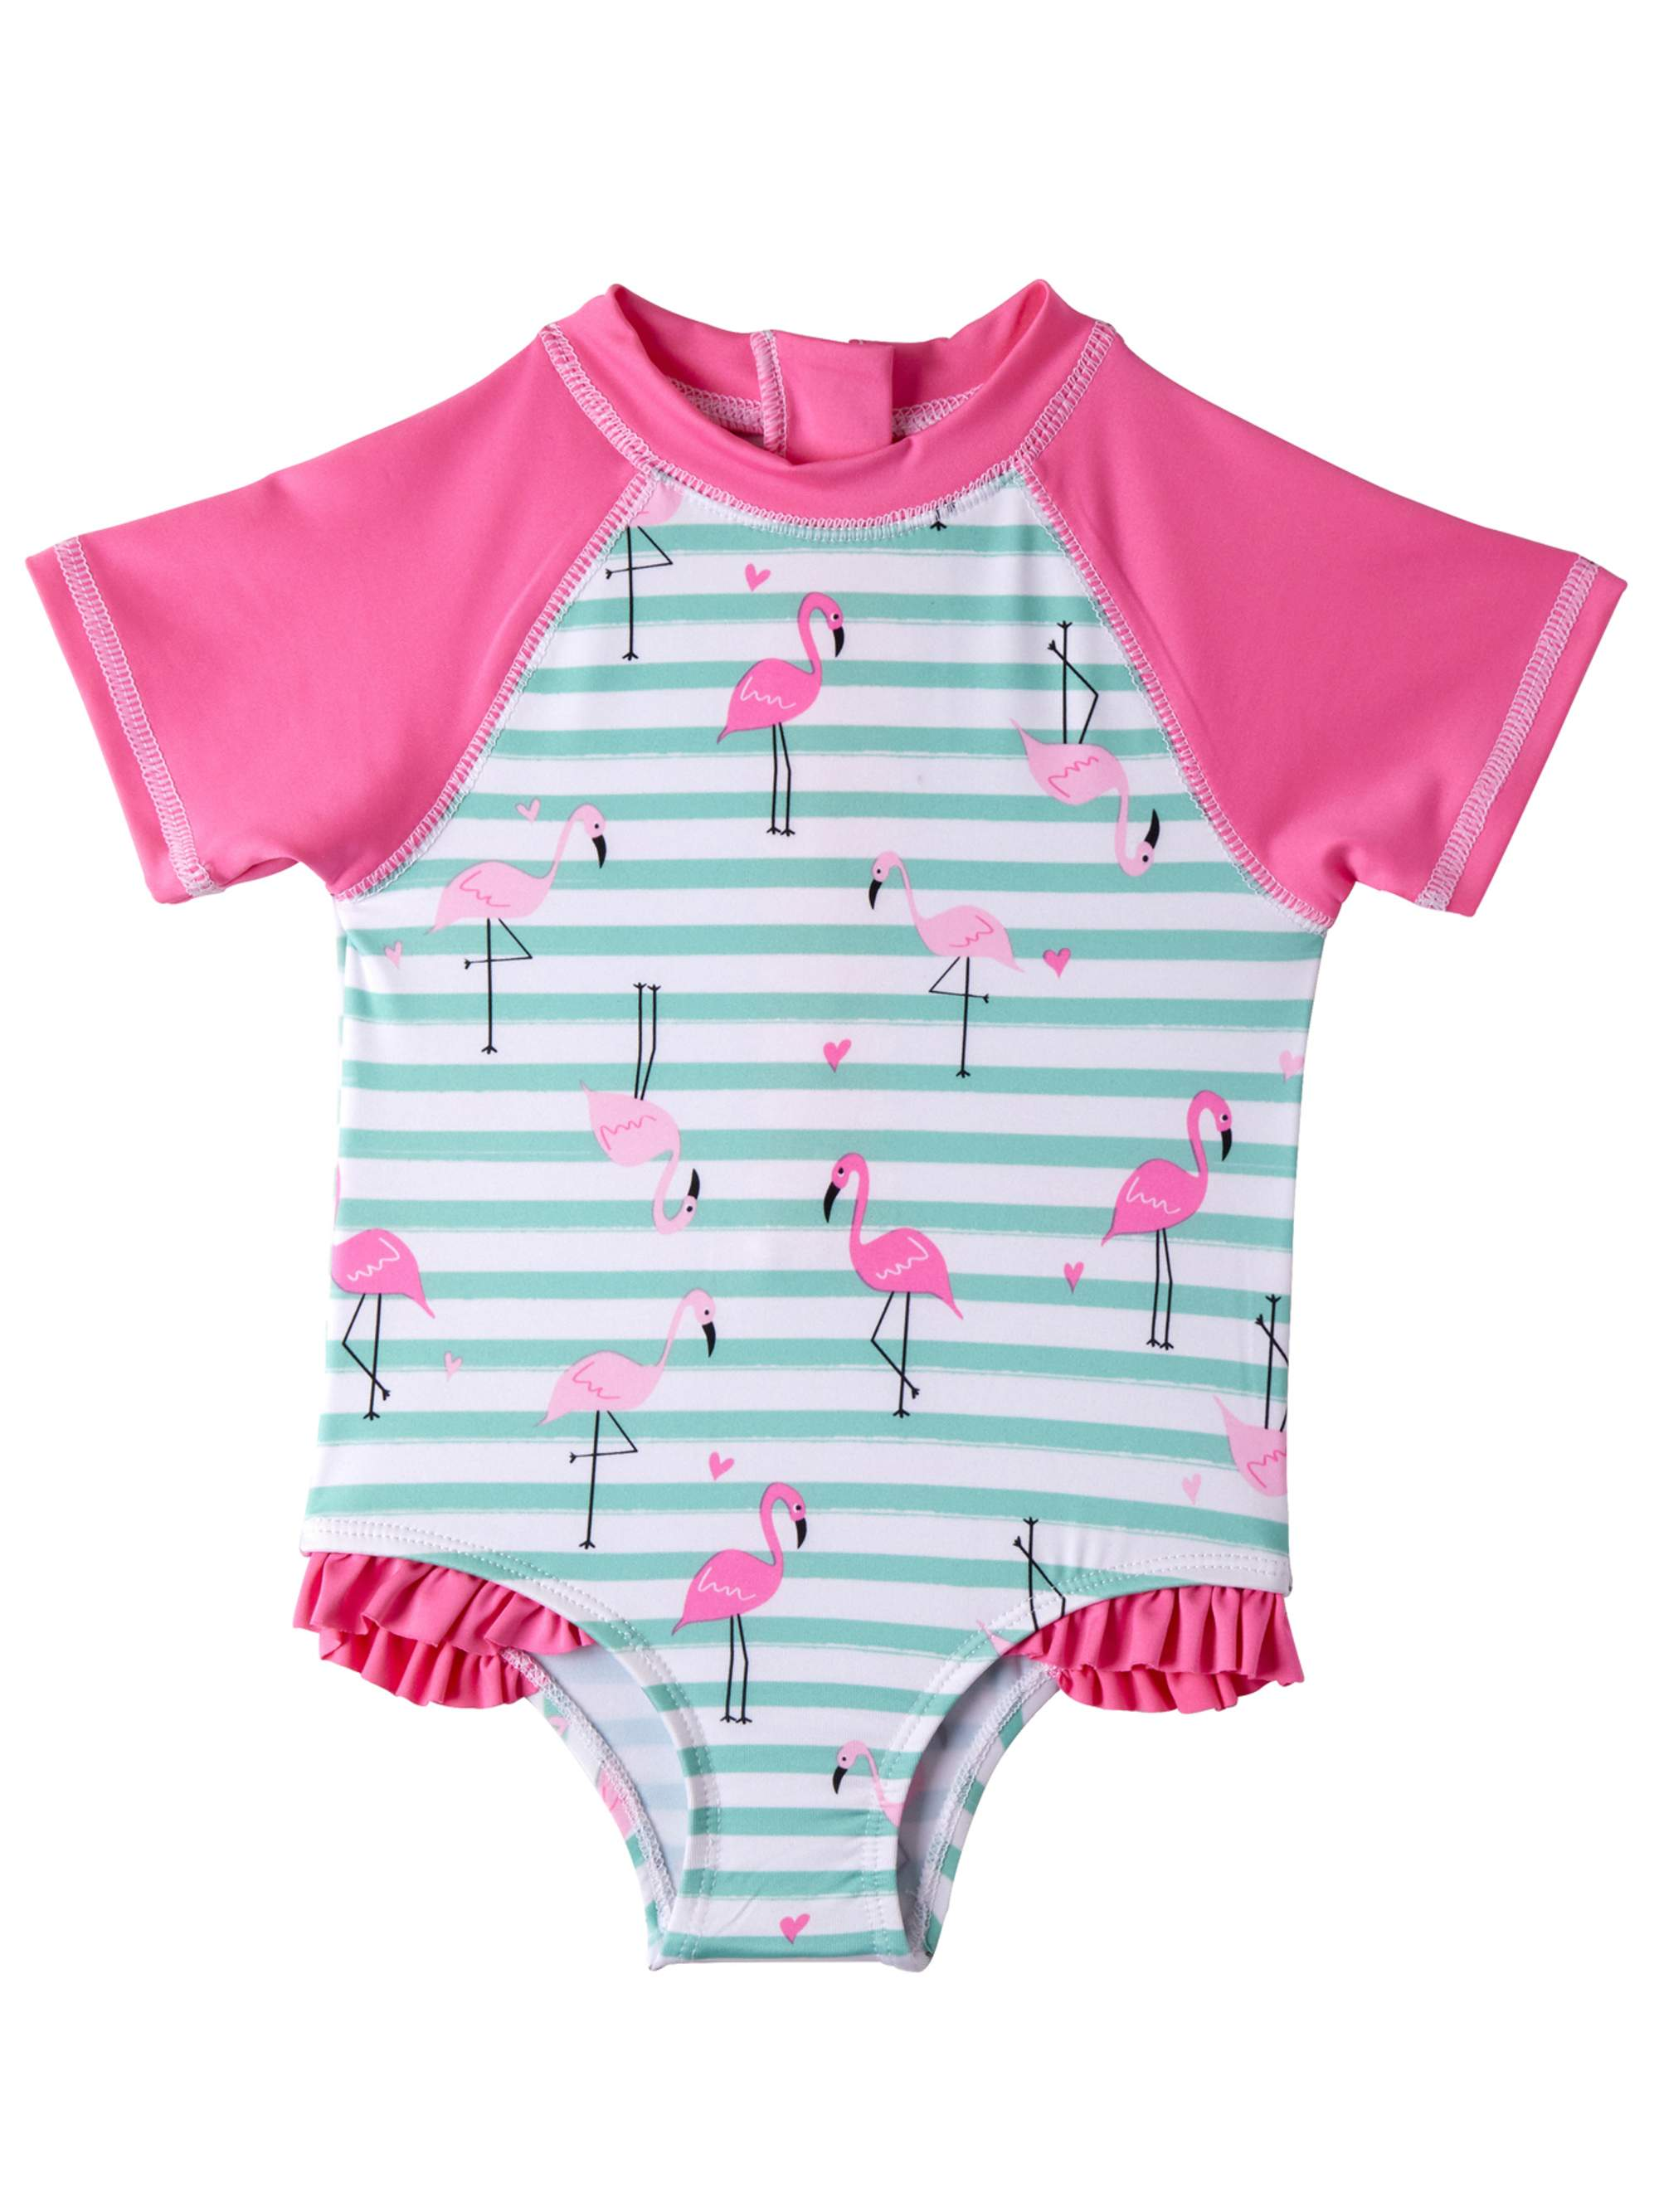 Wippette Baby Girls Swimwear Newborn//Infant One Piece Rash Guard Swimsuit with Sun Protection UPF 50+